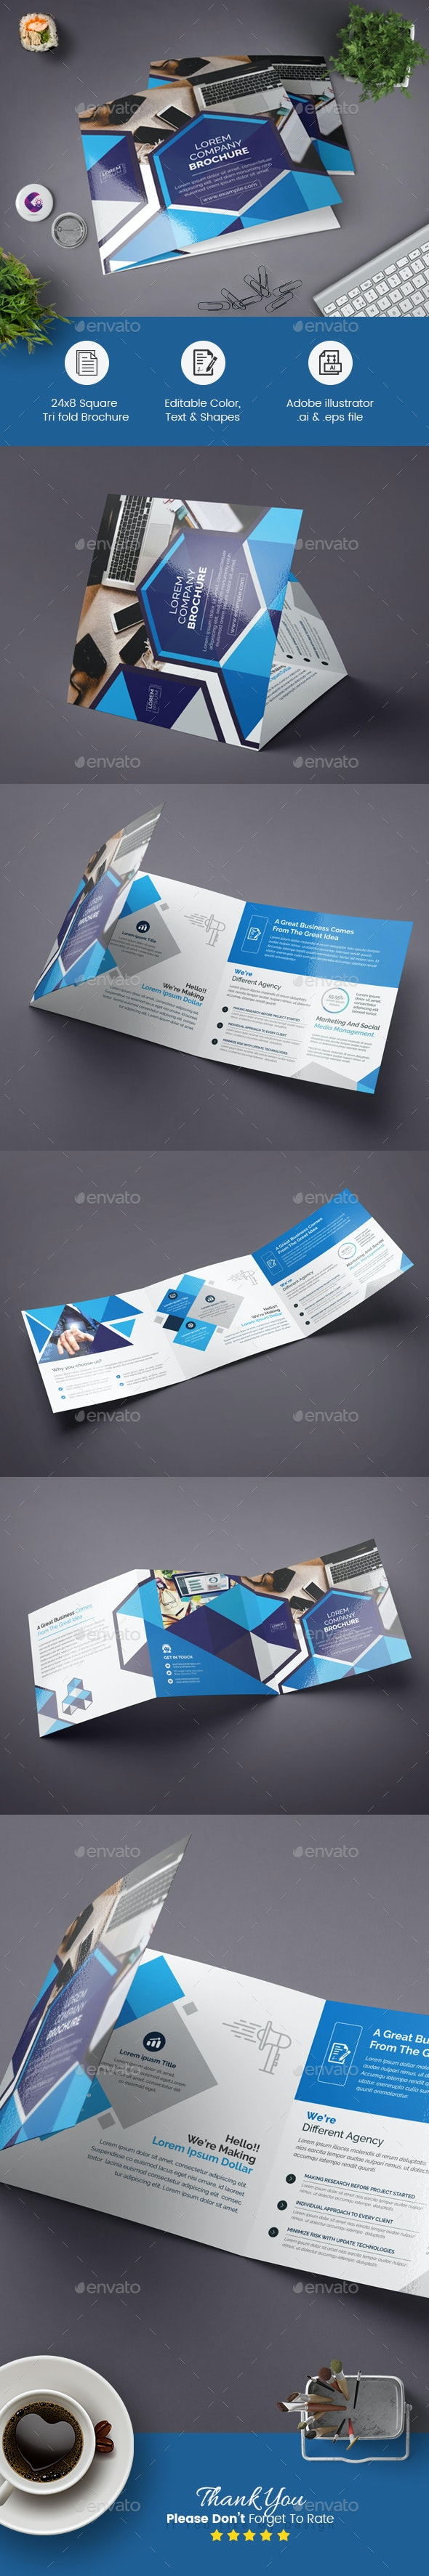 Geometric Square Tri-Fold Brochure - Corporate Brochures